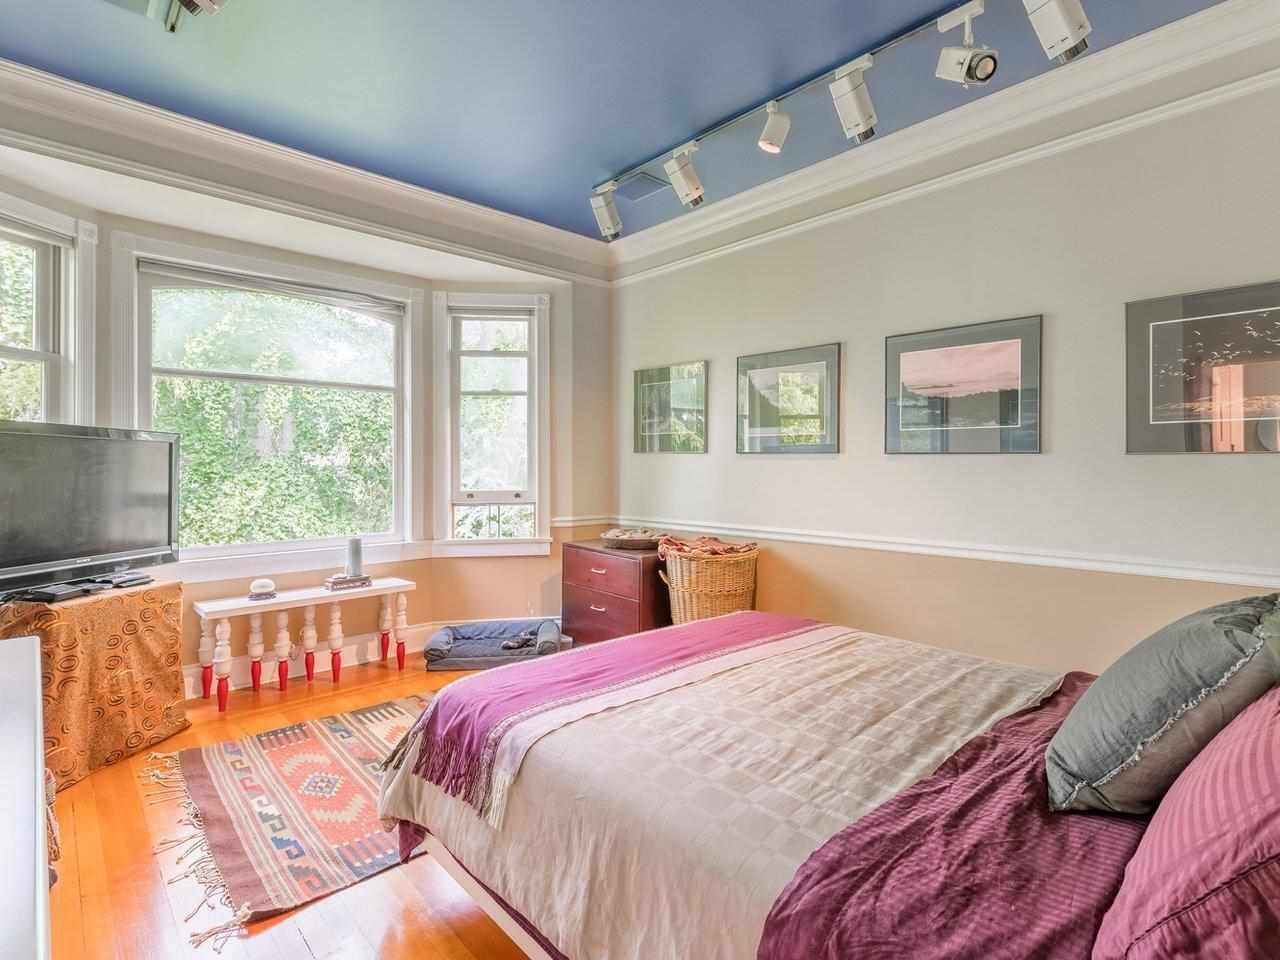 Photo 10: Photos: 2556 W 2ND Avenue in Vancouver: Kitsilano House for sale (Vancouver West)  : MLS®# R2593228